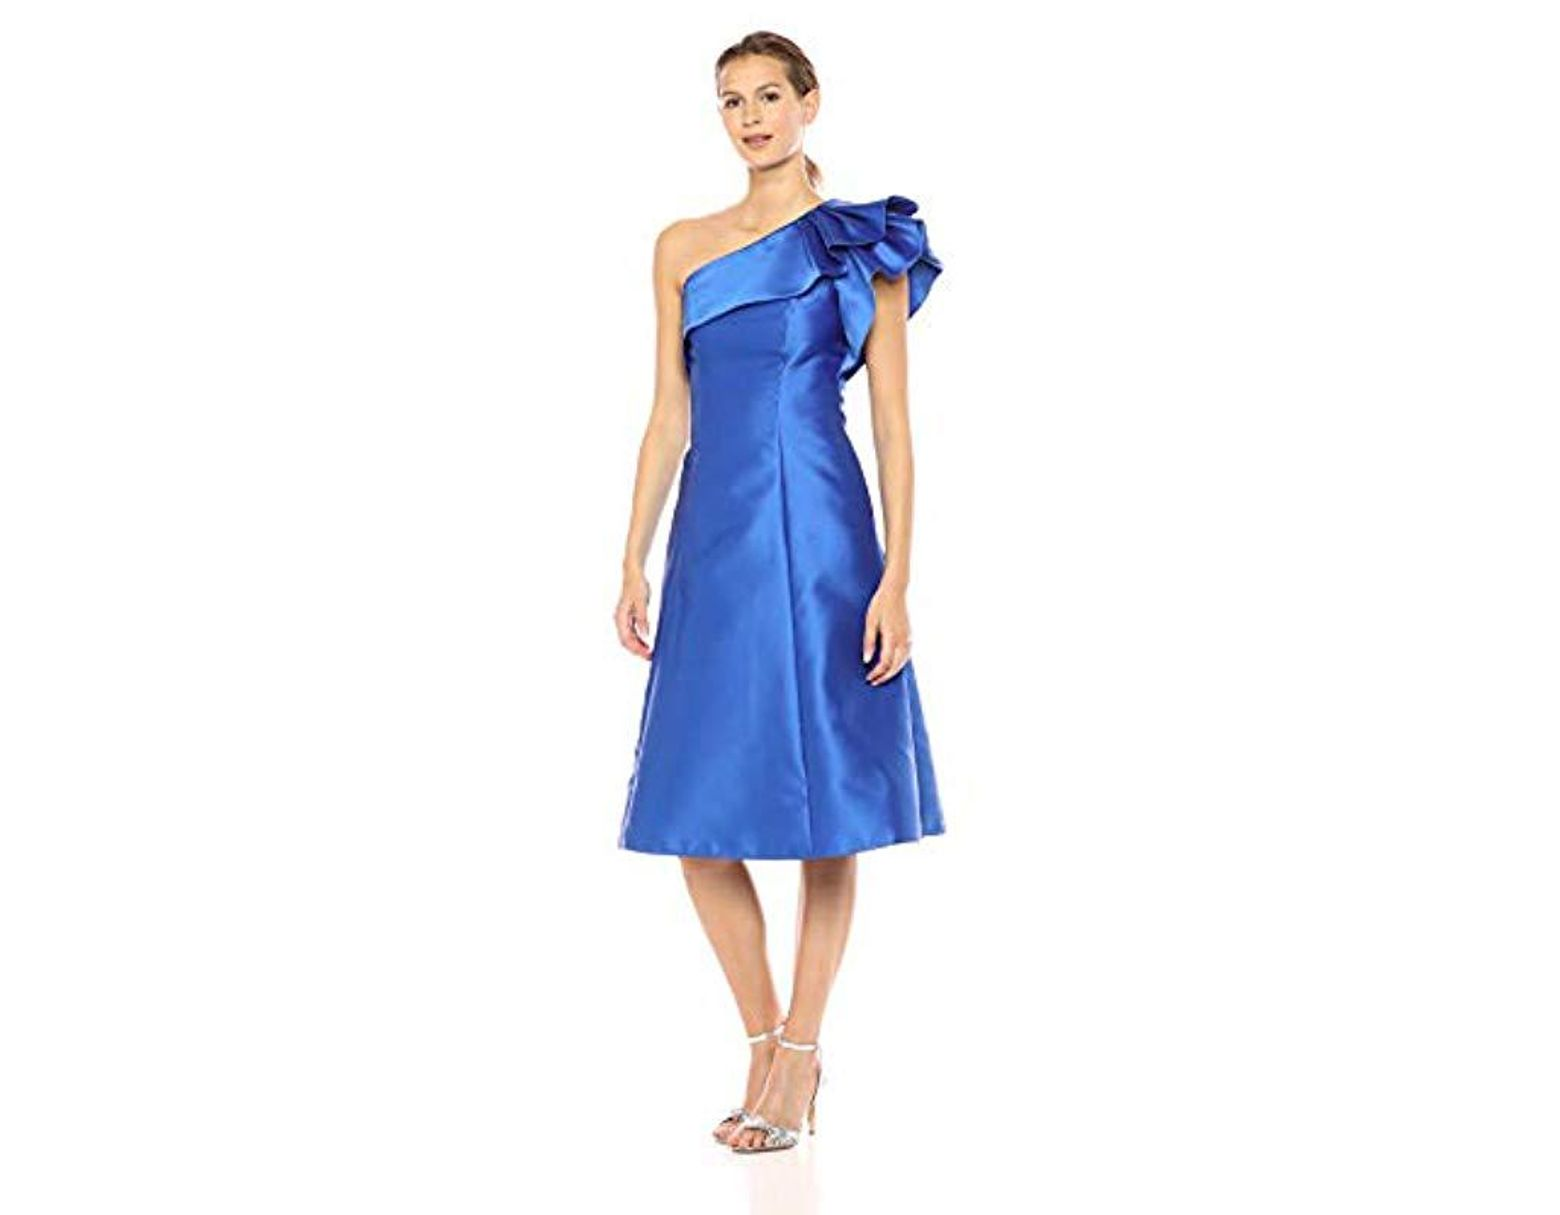 85e2a477bf2c Adrianna Papell One Shoulder Ruffle Sleeve Tea Length Mikado Dress in Blue  - Lyst